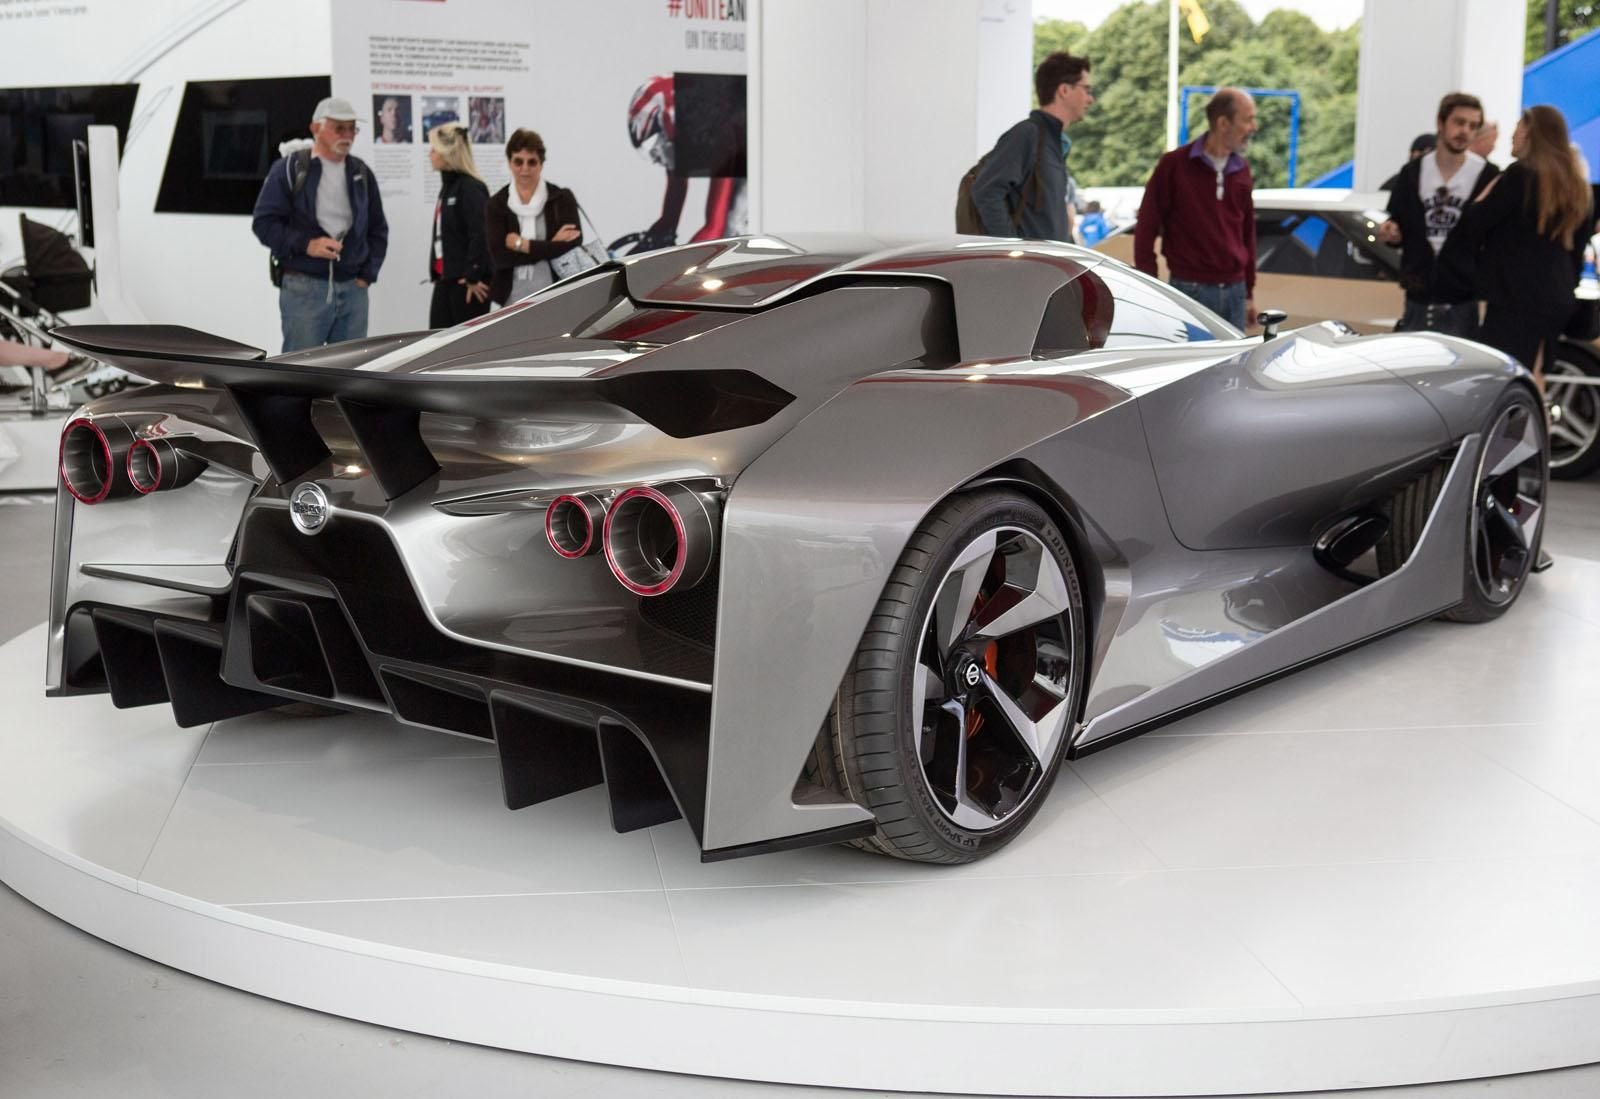 Next Nissan Gt R Could Resemble The Concept 2020 Vision Gran Turismo Concept Cars Super Cars Car